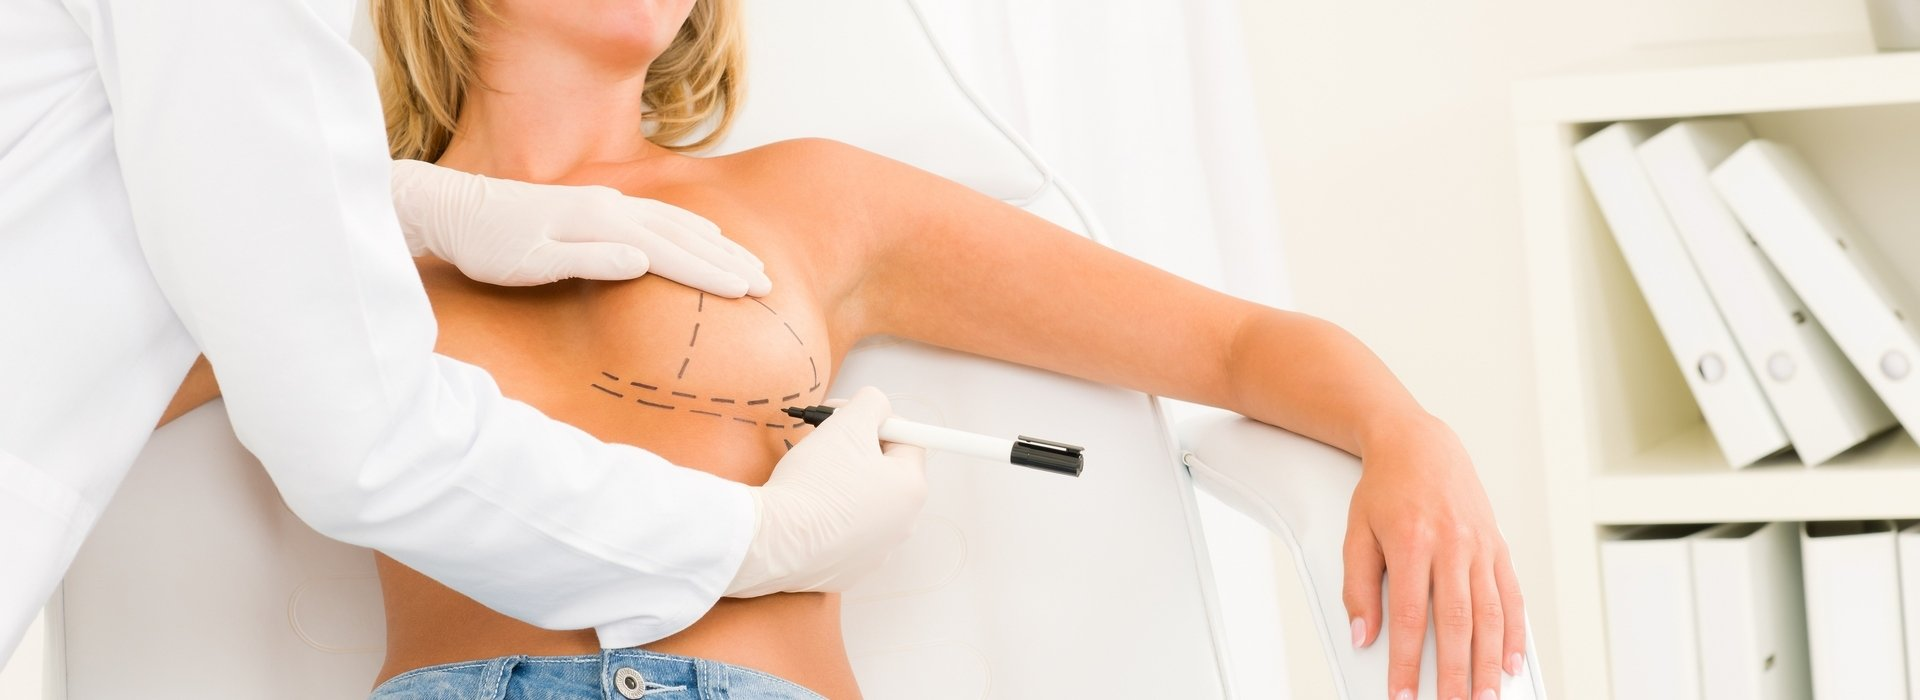 Breast cosmetic treatments in Budapest – Budapest breast plastic surgery